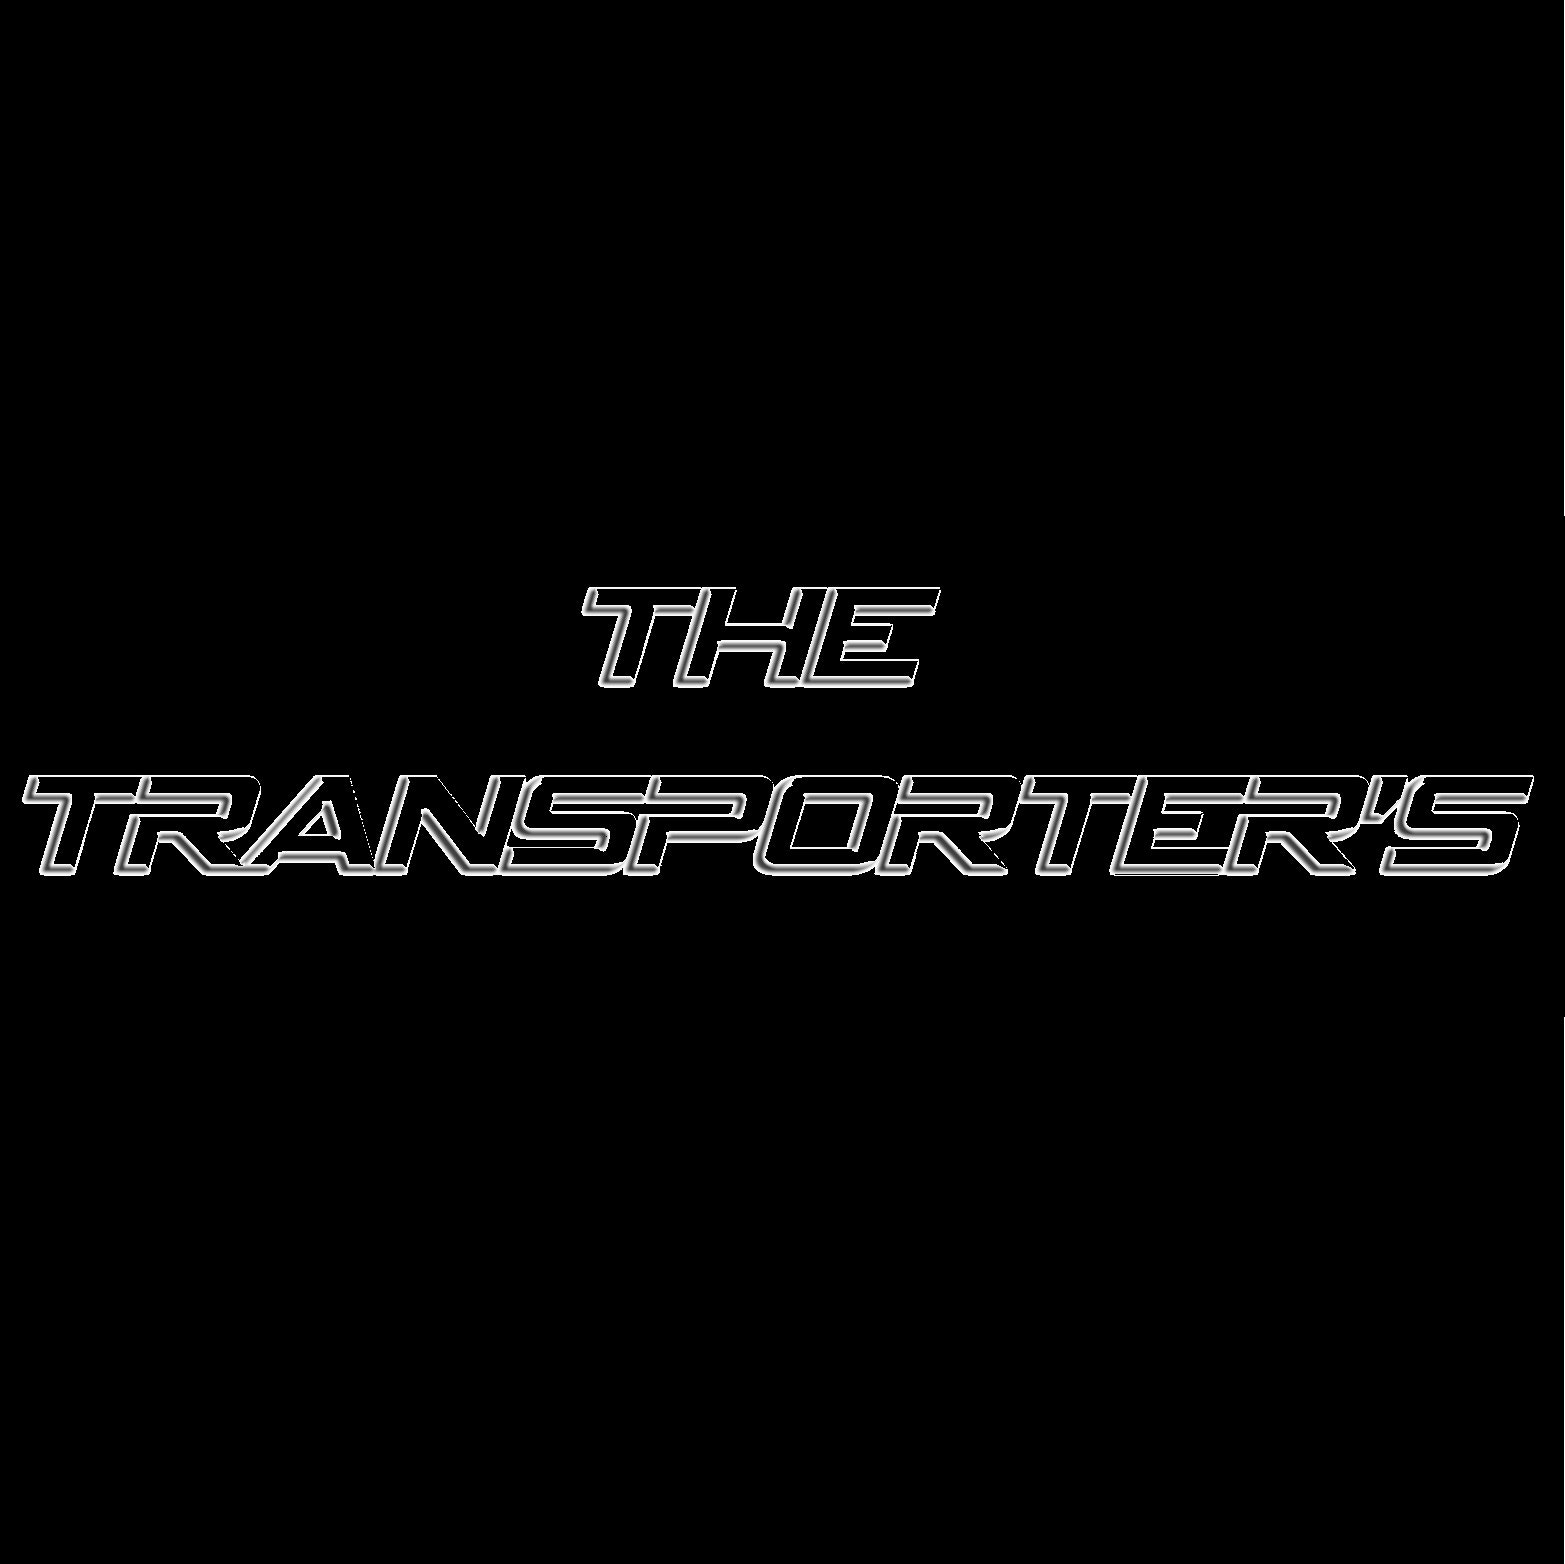 The Transporters logo